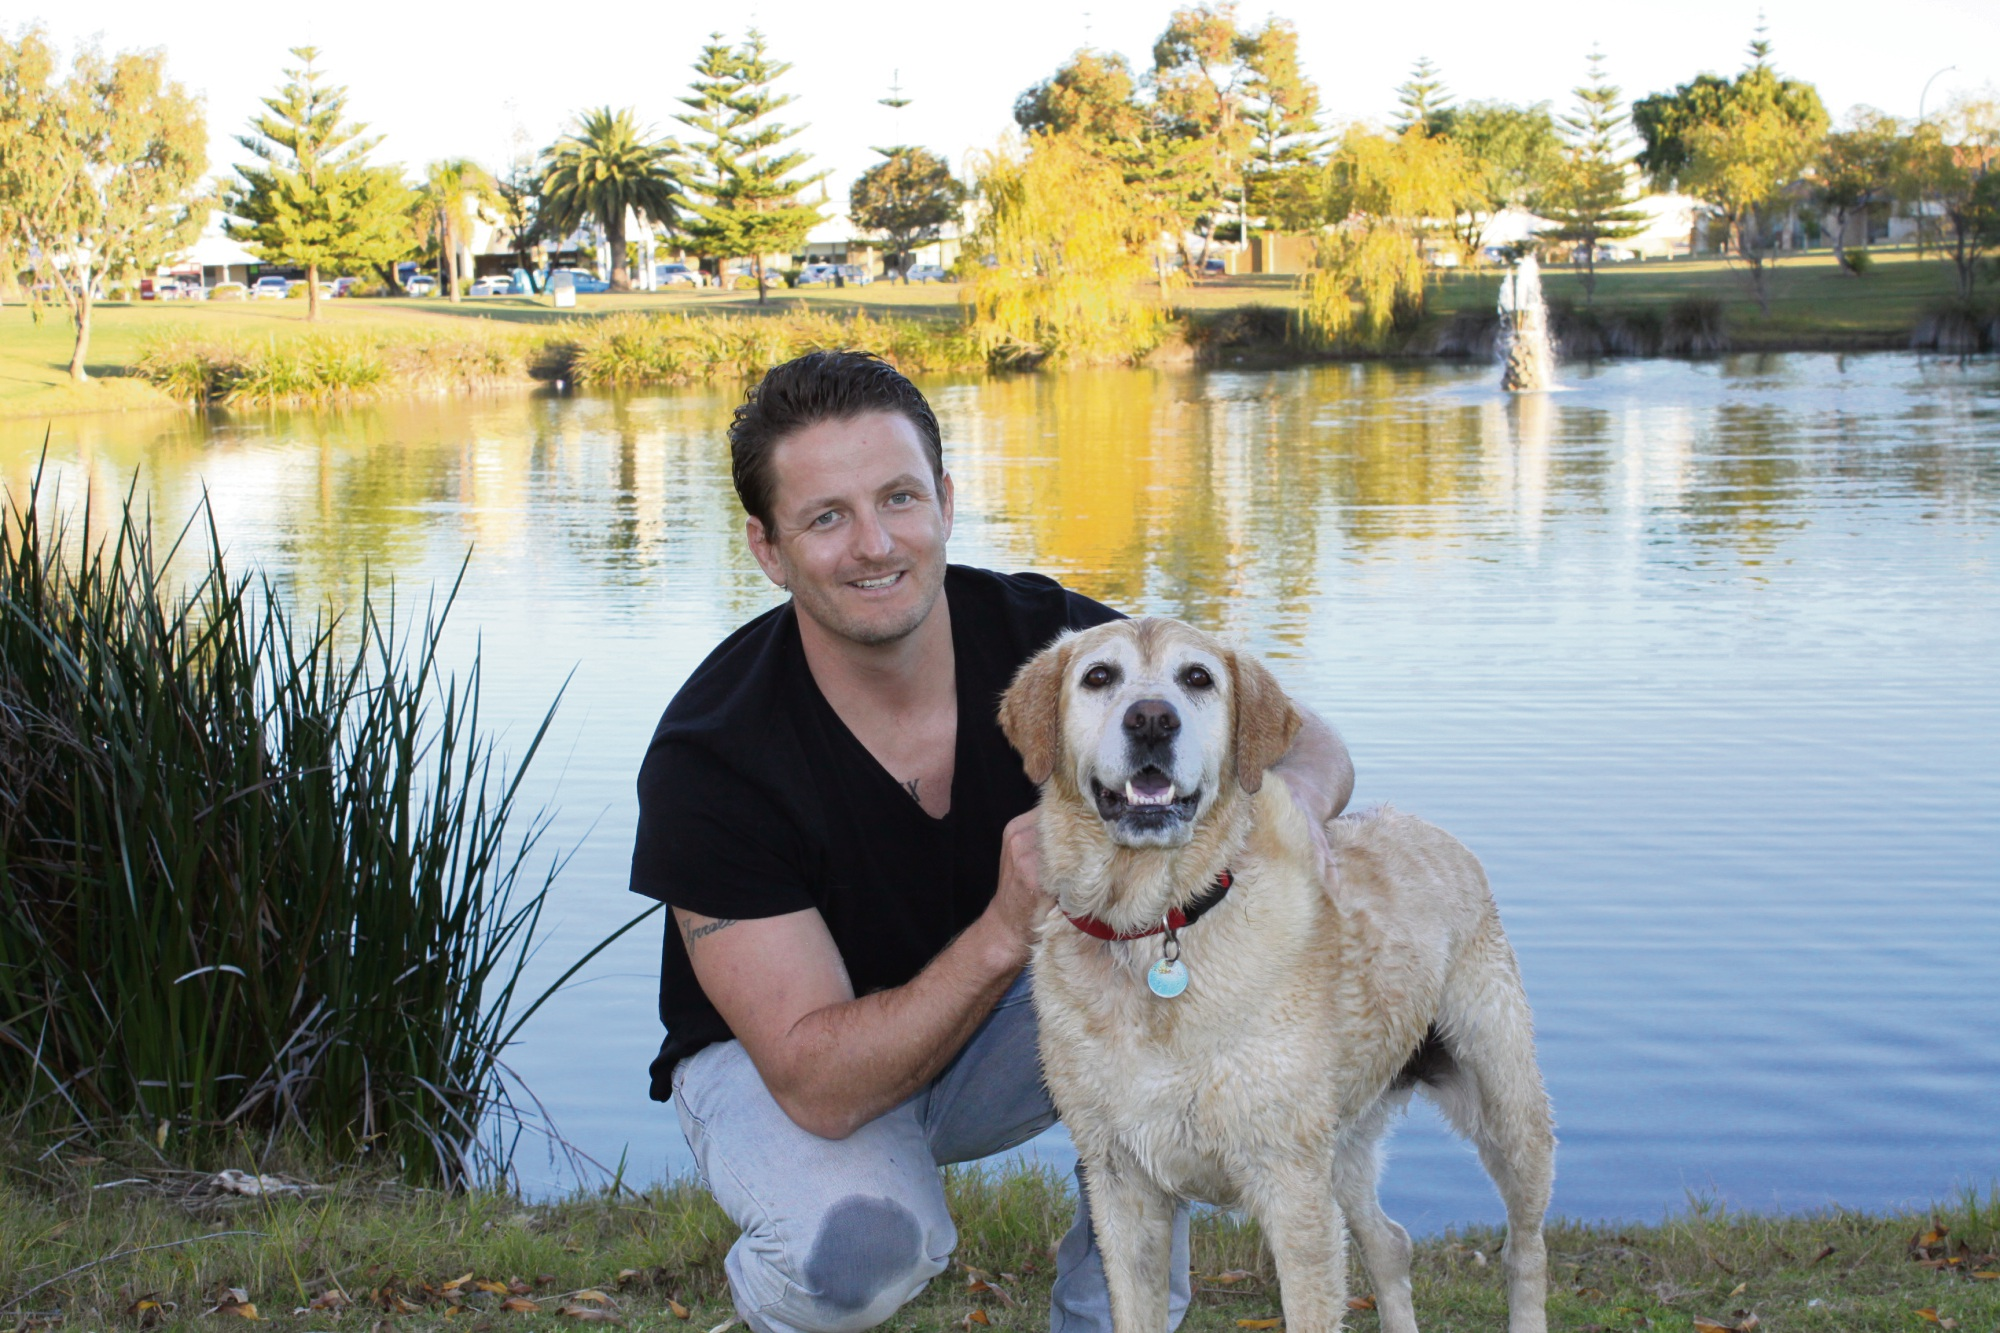 Dean Tyrrell and Nala at their local park, one of Nala's favourite destinations.